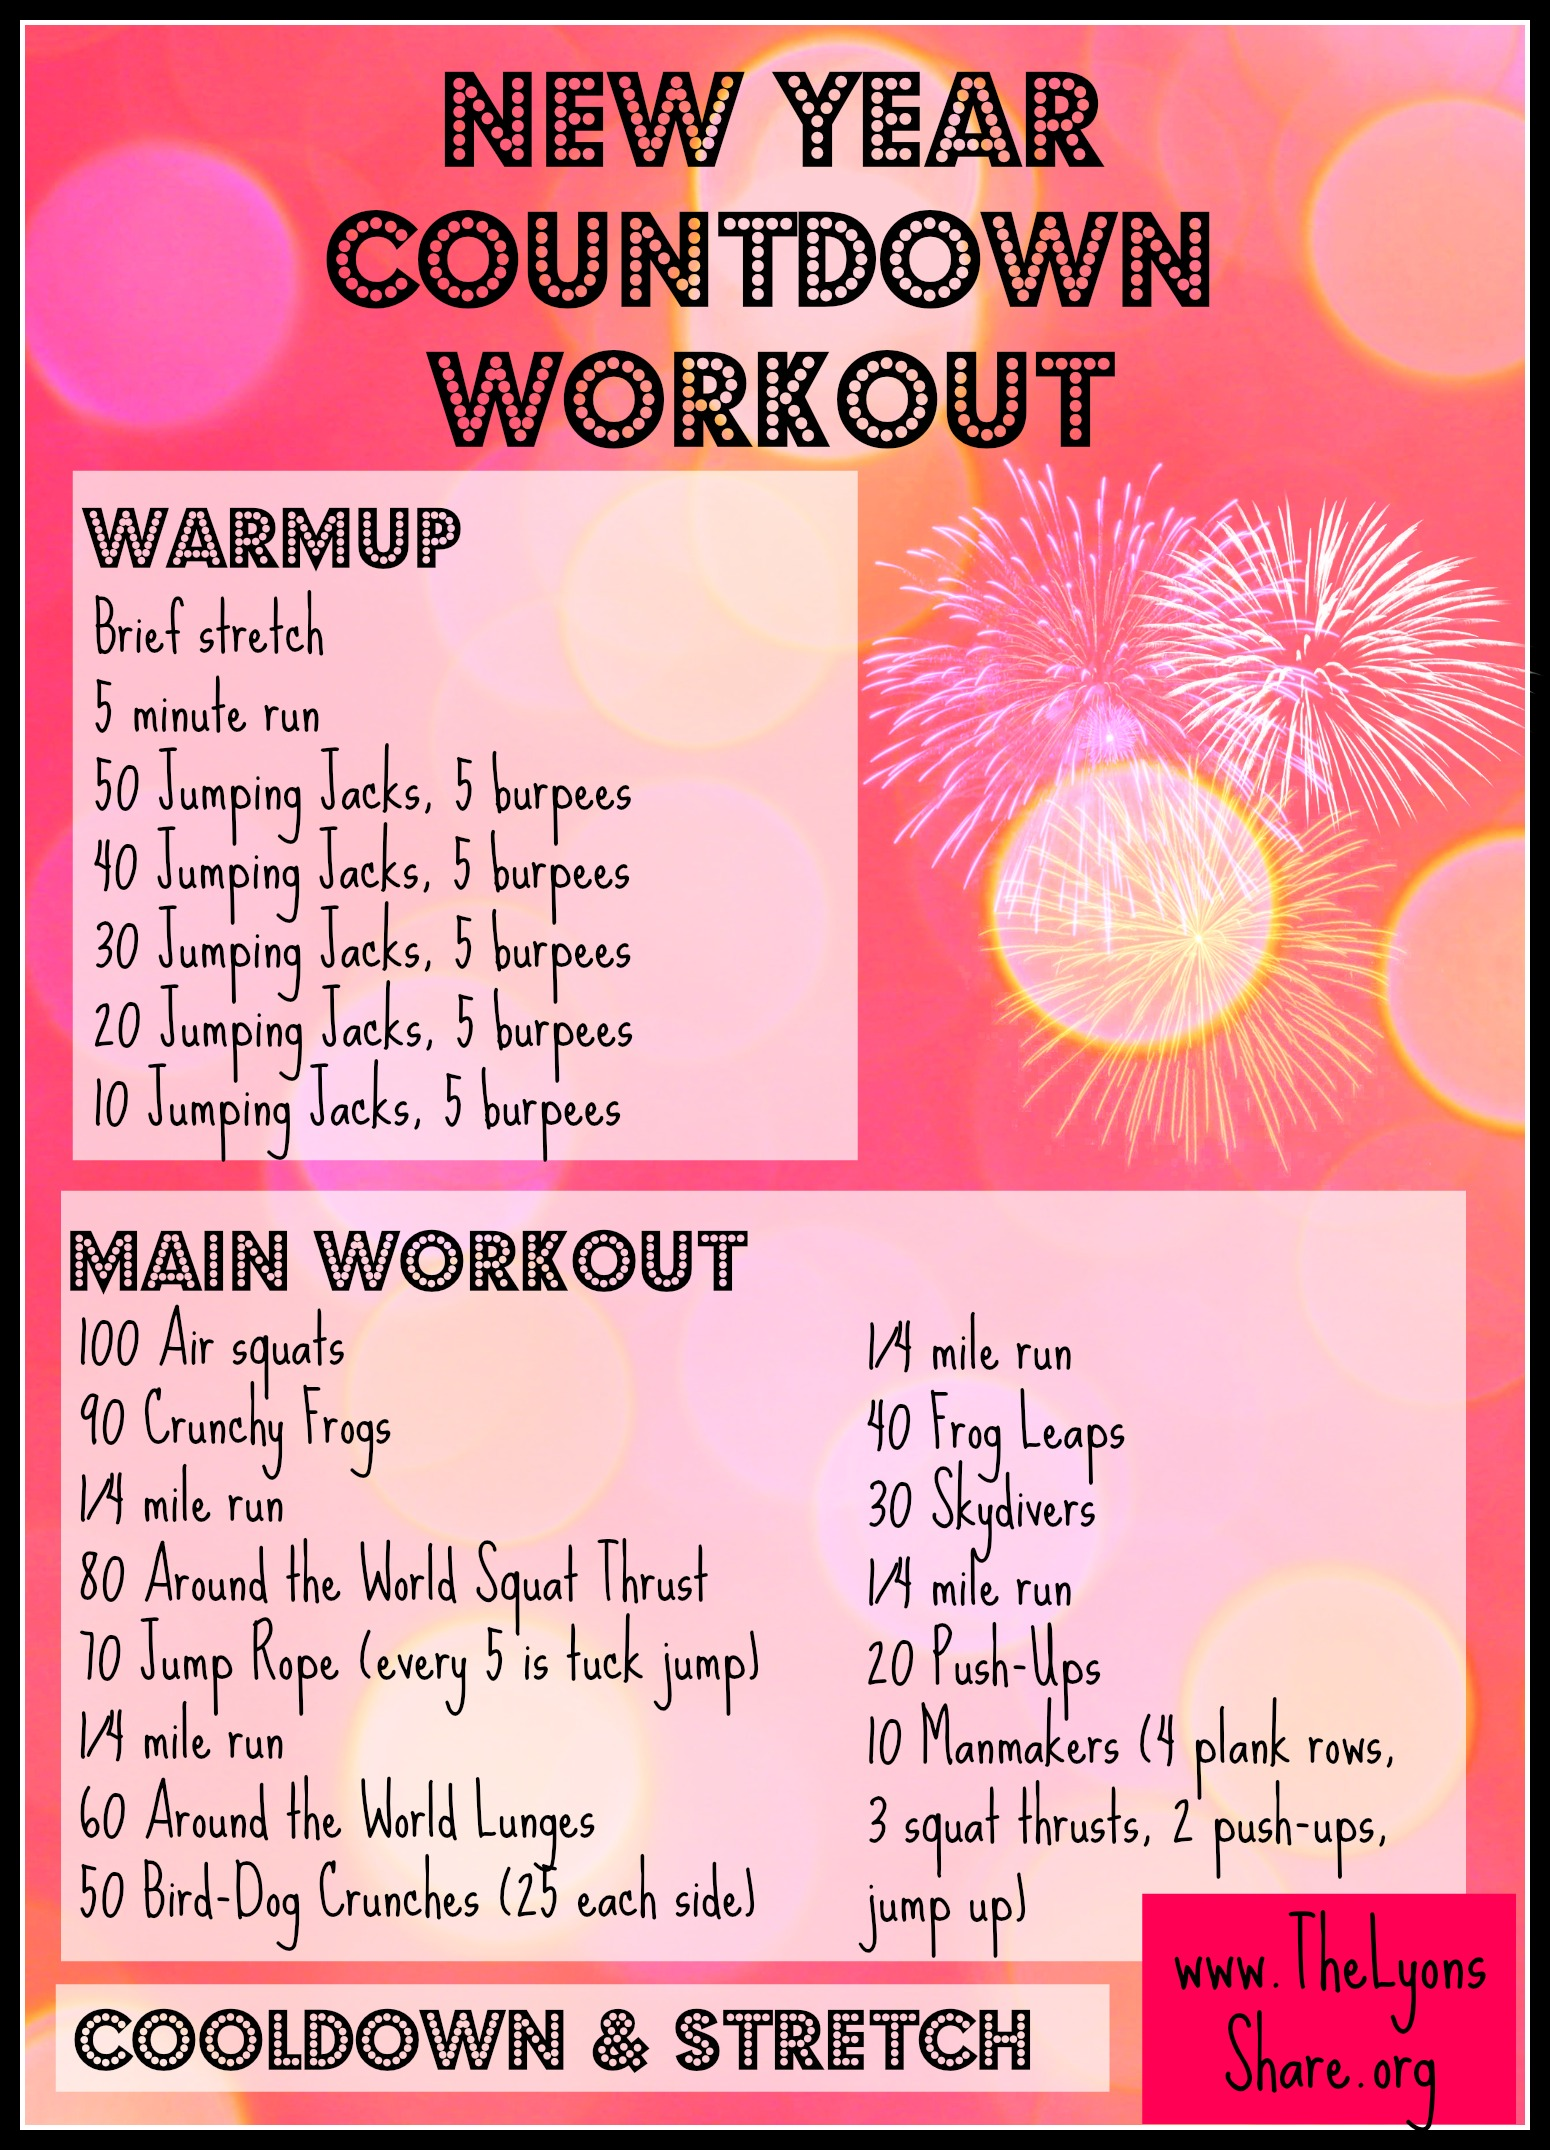 New Year Countdown Workout